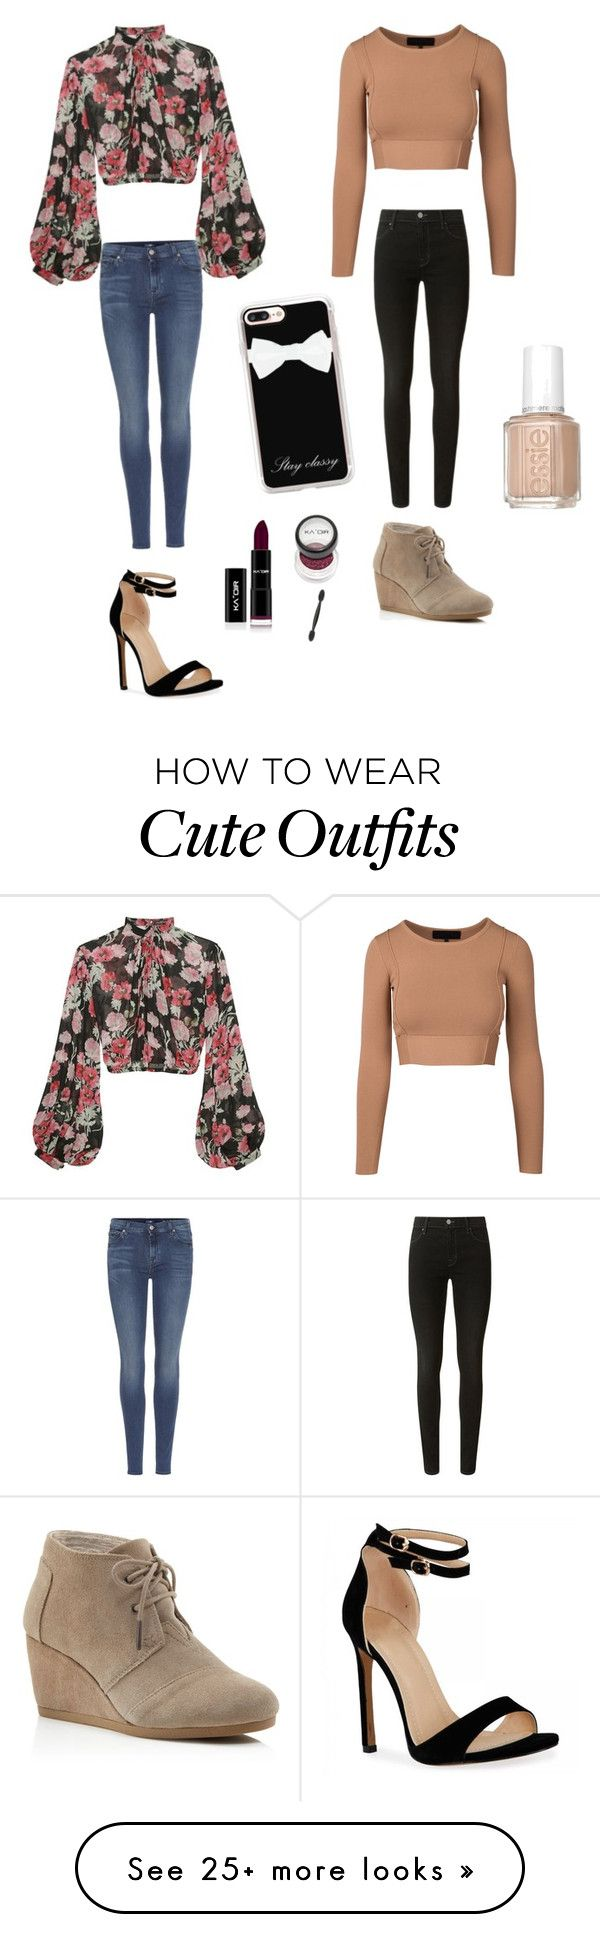 """Cute Thanksgiving Outfits "" by lsantana13 on Polyvore featuring Jill Stuart, 7 For All Mankind, J Brand, TOMS and Casetify"